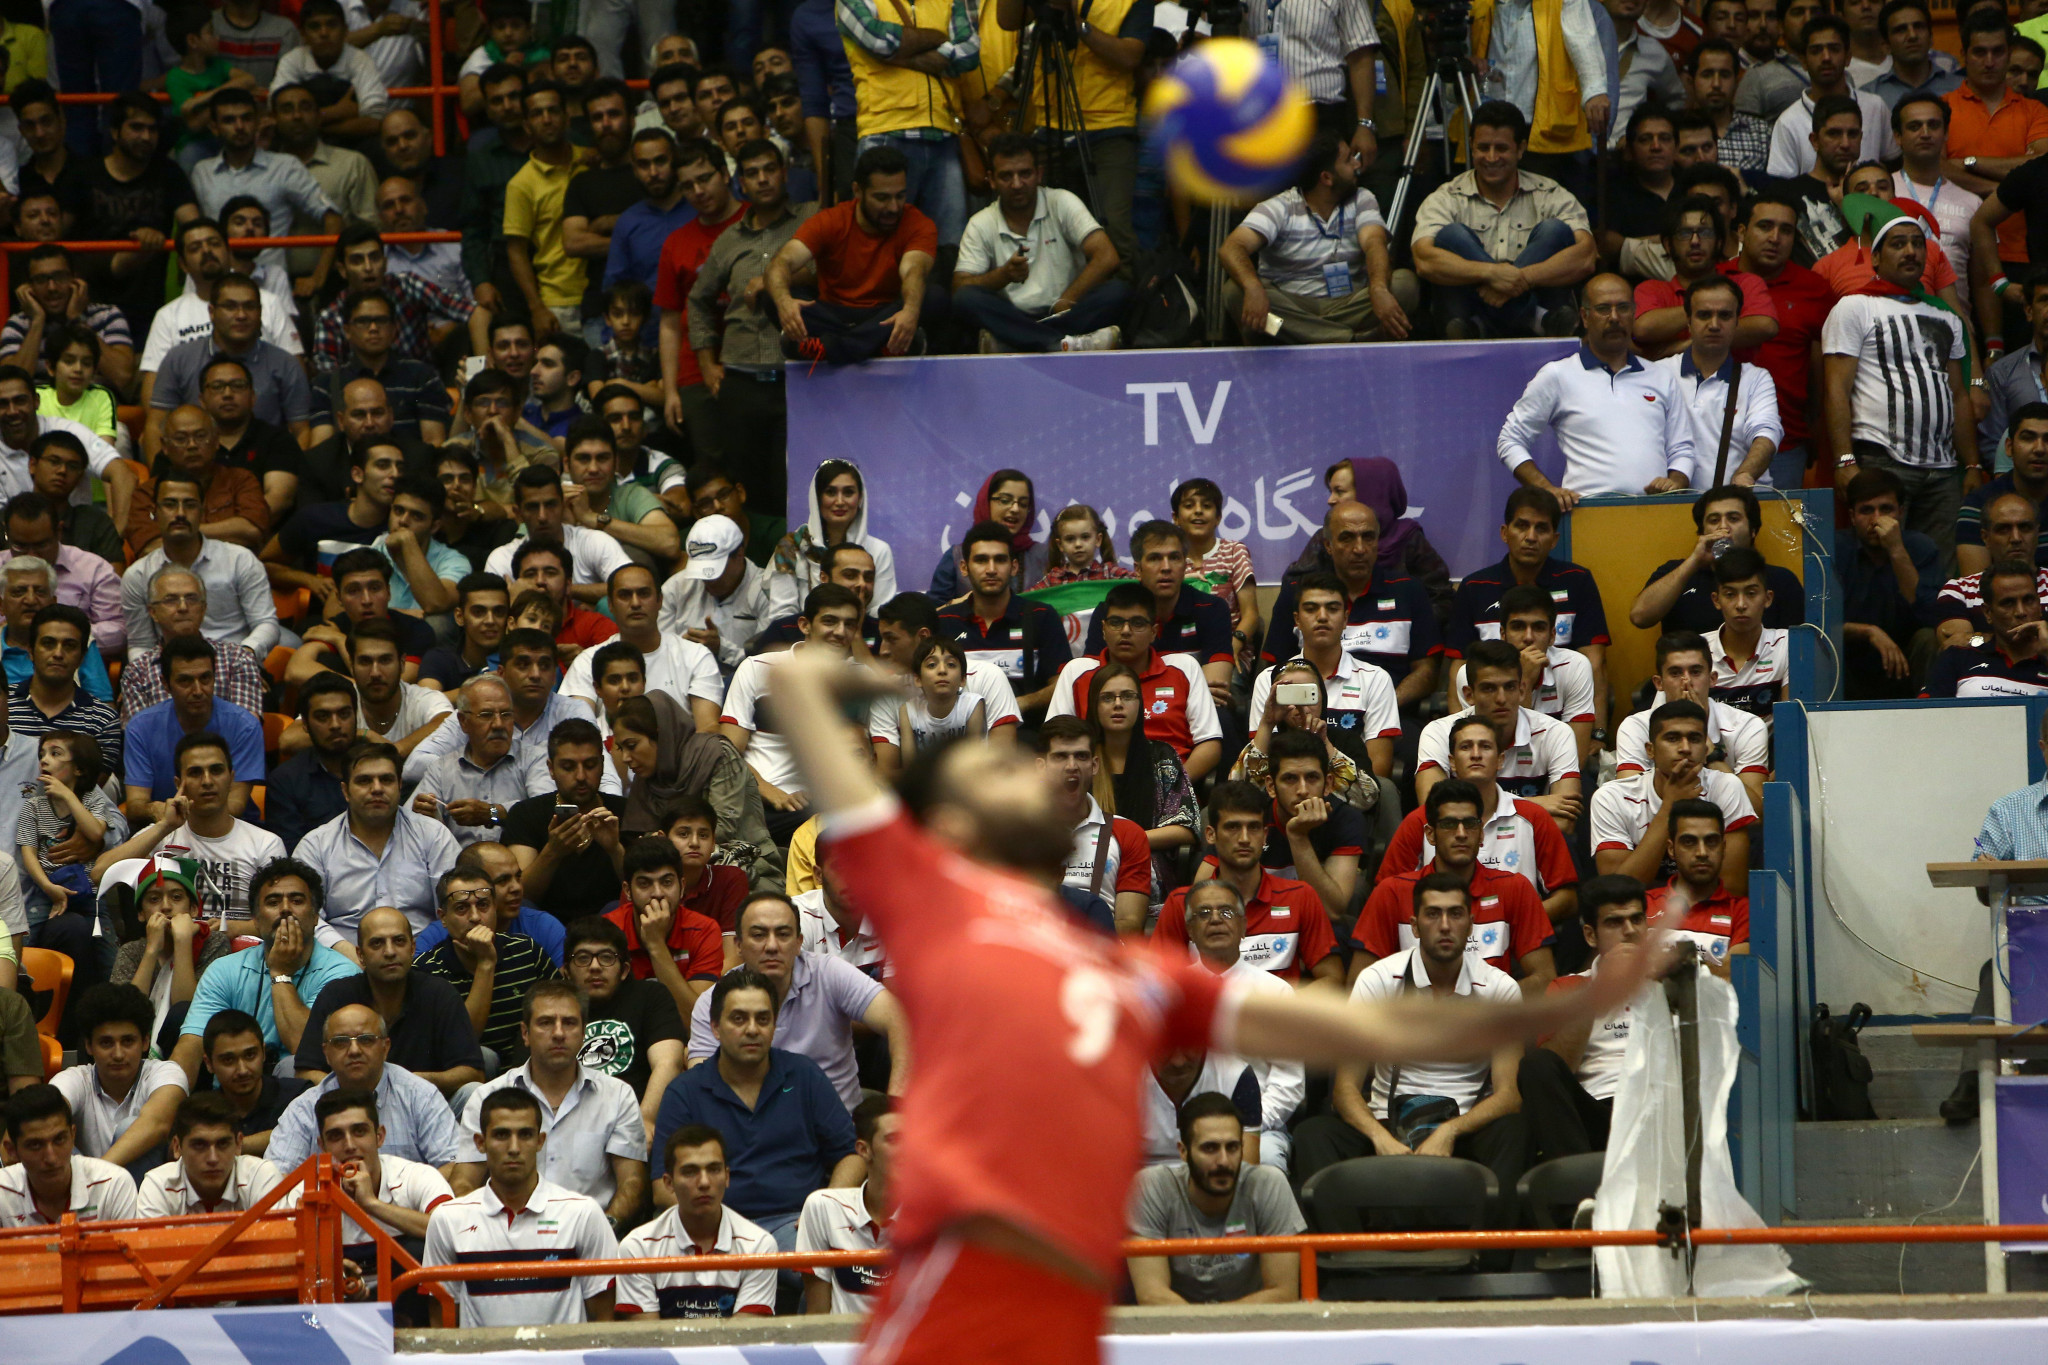 Only a limited number of pre-vetted women are allowed to attend volleyball matches in Iran ©Getty Images